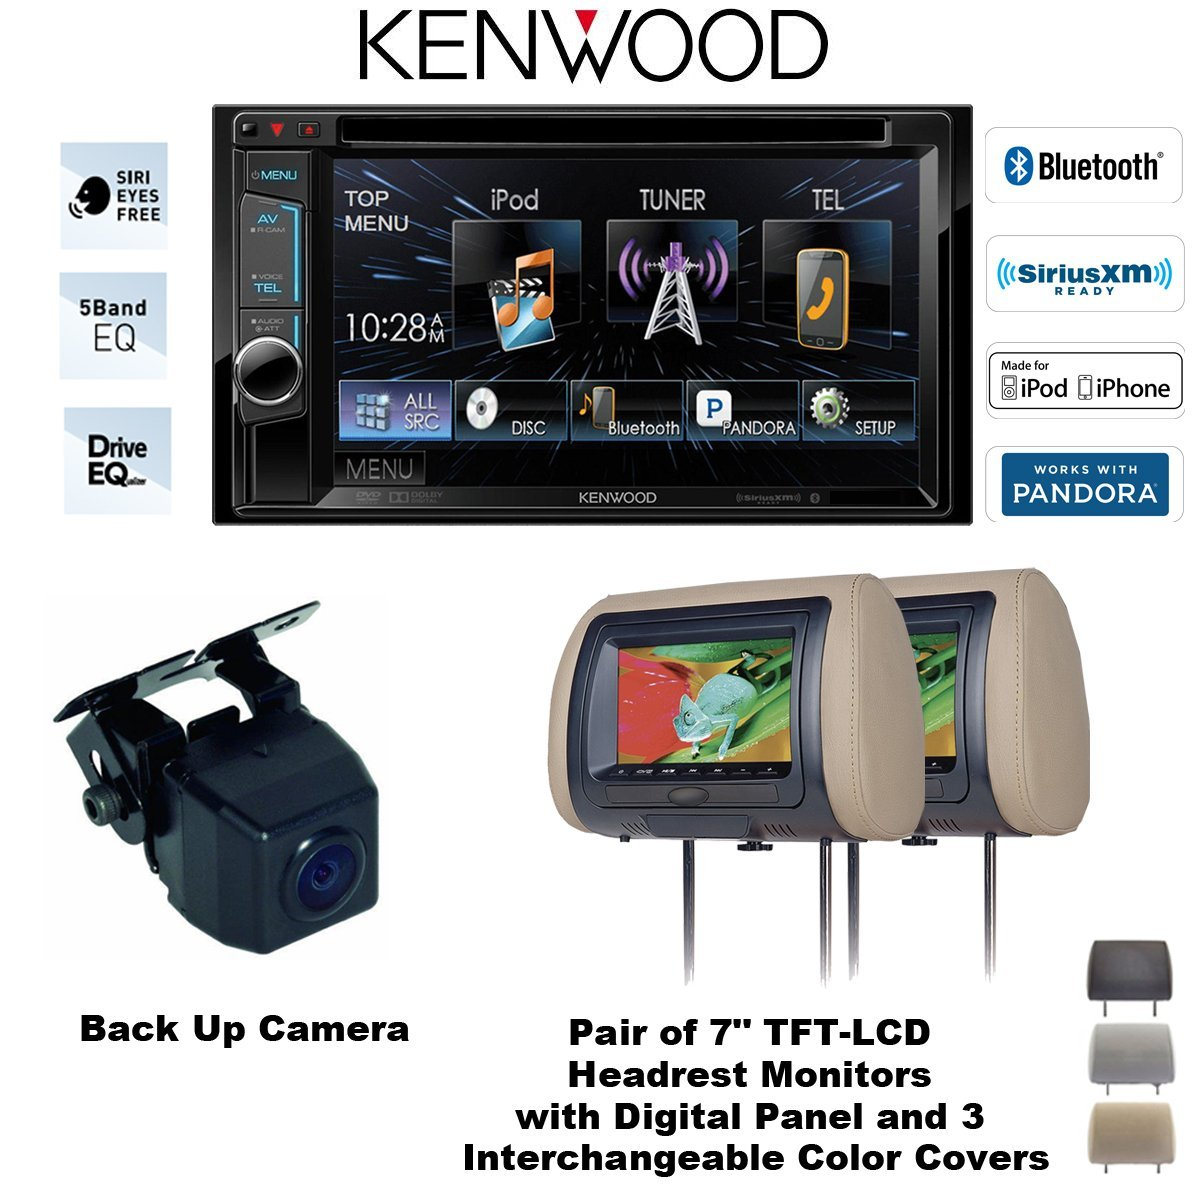 Cheap Kenwood Ddx371 Dvd Receiver Find Ddx516 Wiring Diagram Get Quotations Ddx392 62 With Two Headrest Monitors Cls700 And Backup Camera